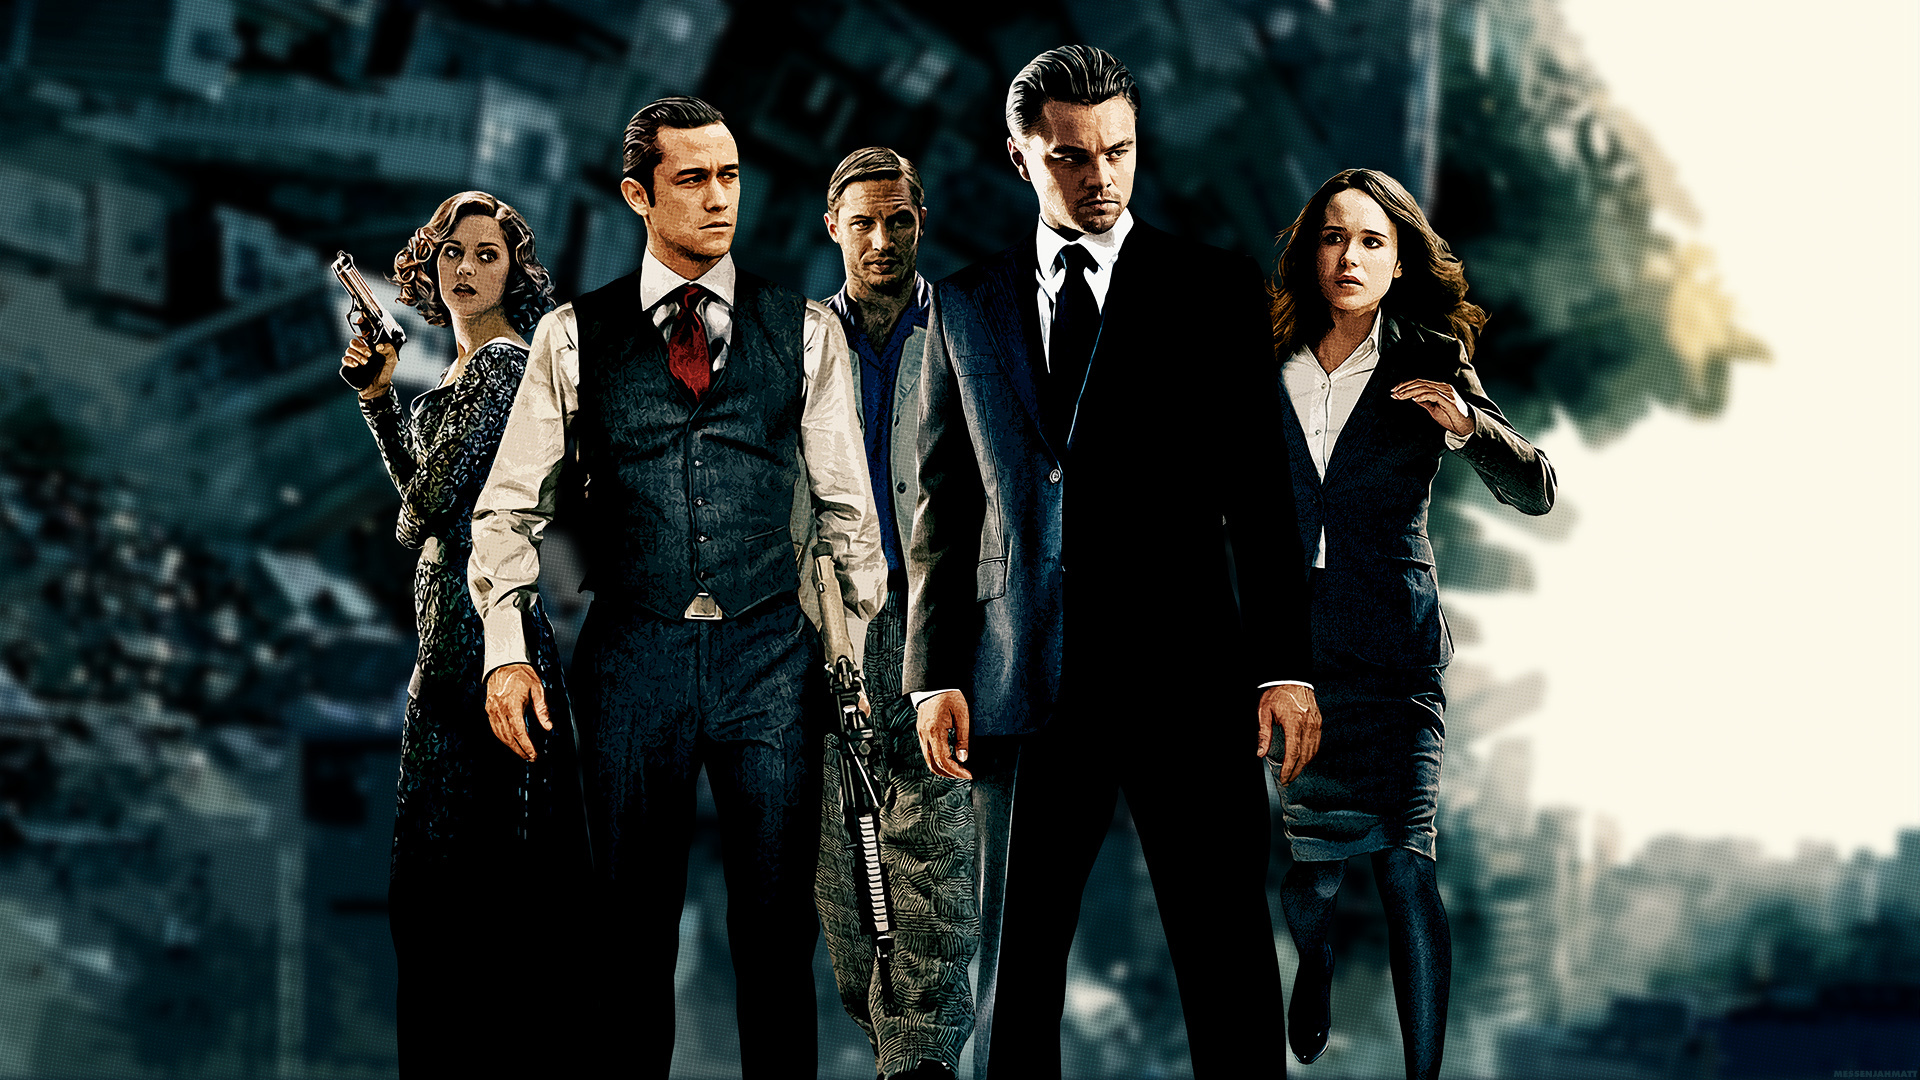 inception marion cotillard Leonardo HD Wallpaper